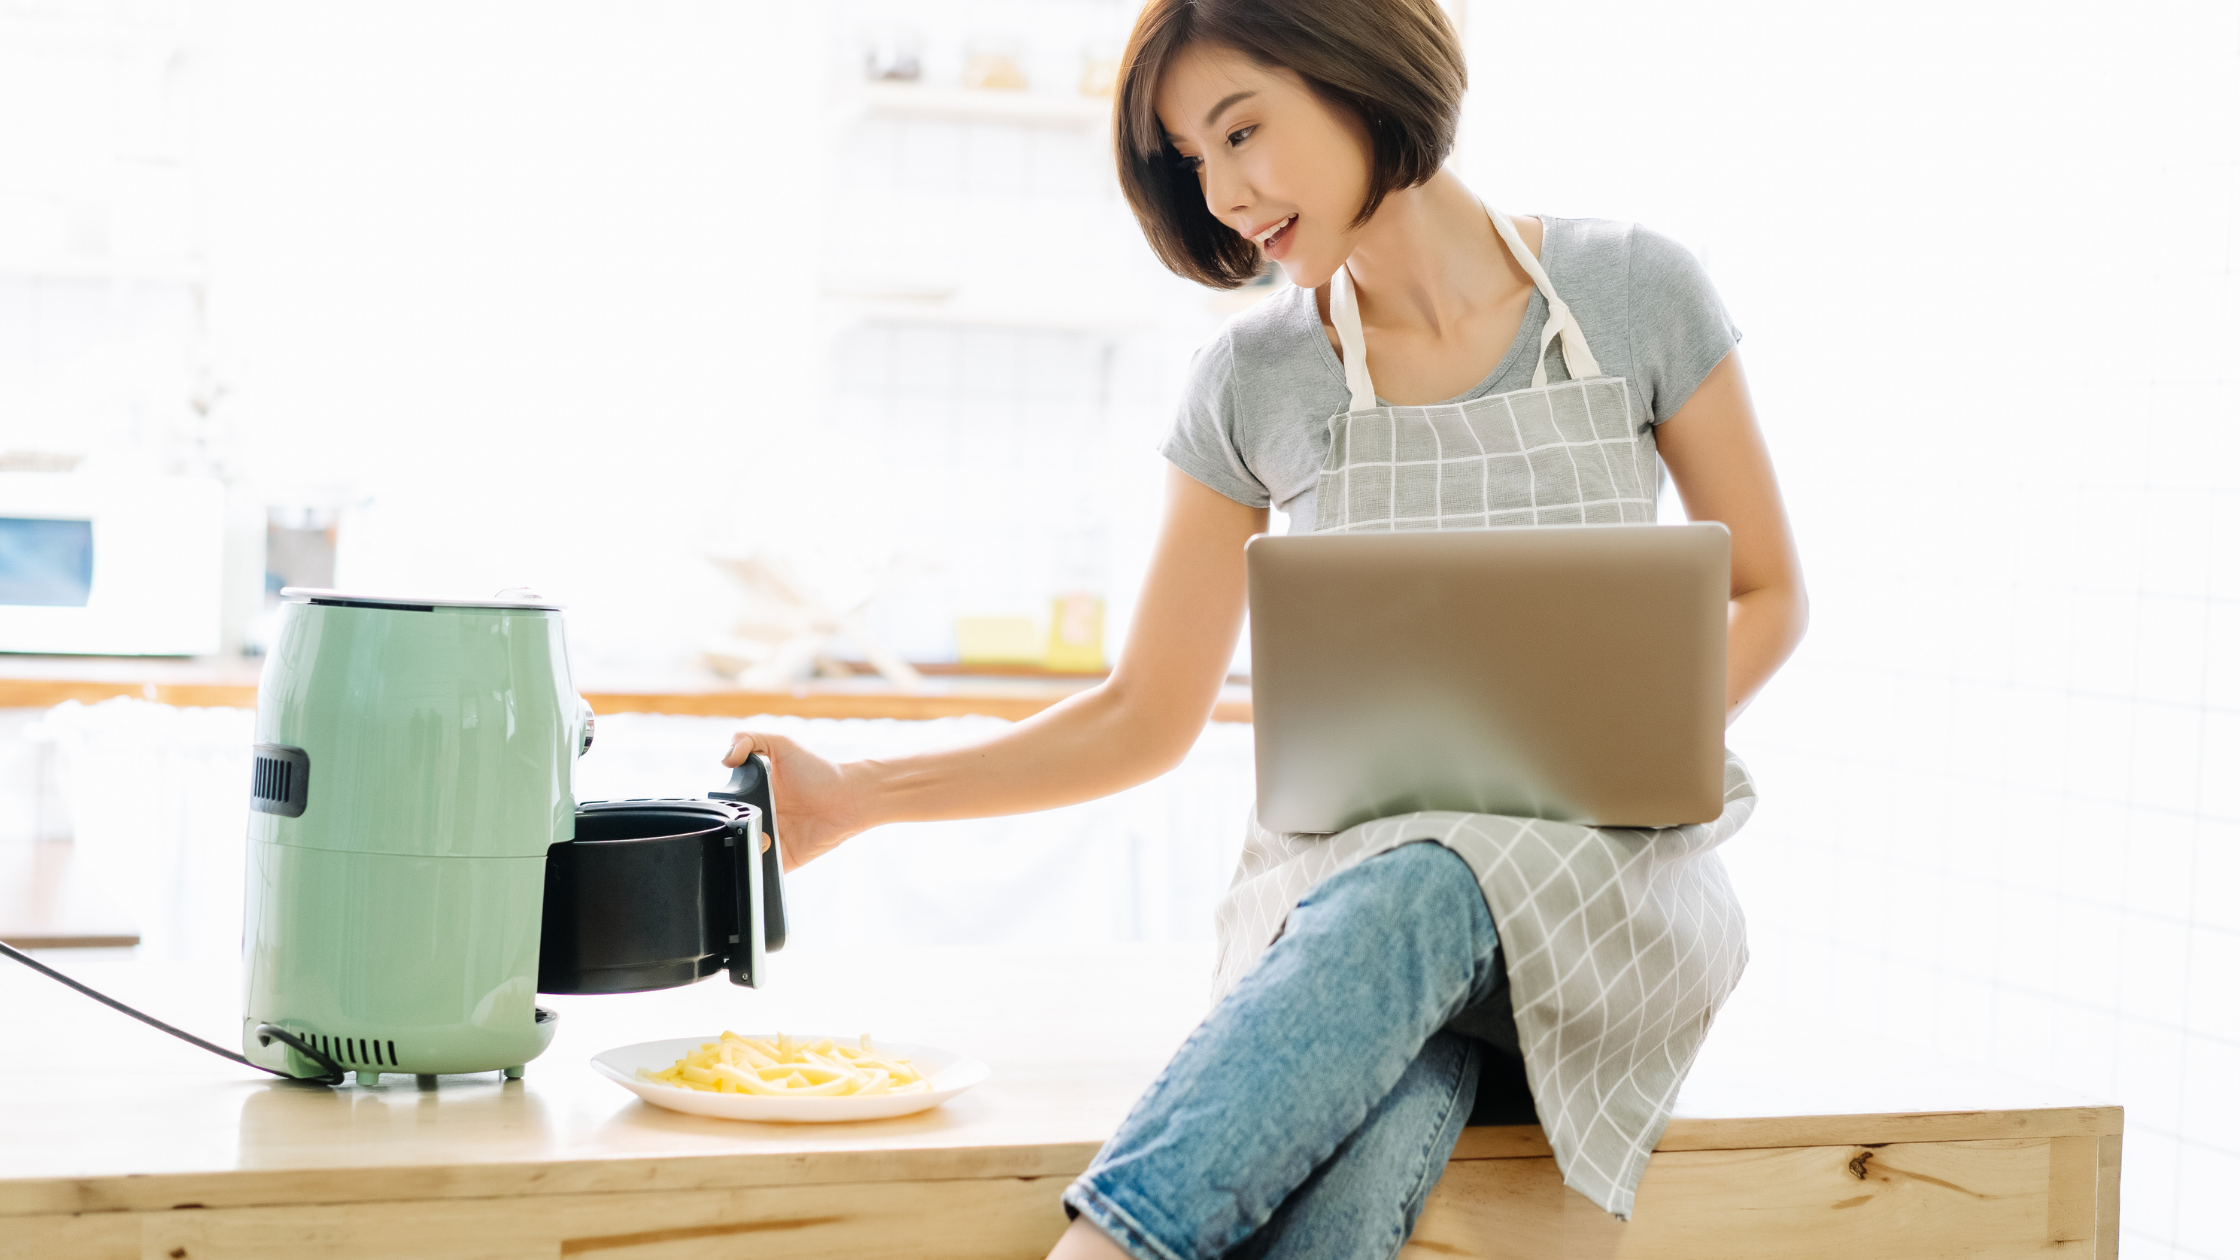 why you should get an air fryer - featured image